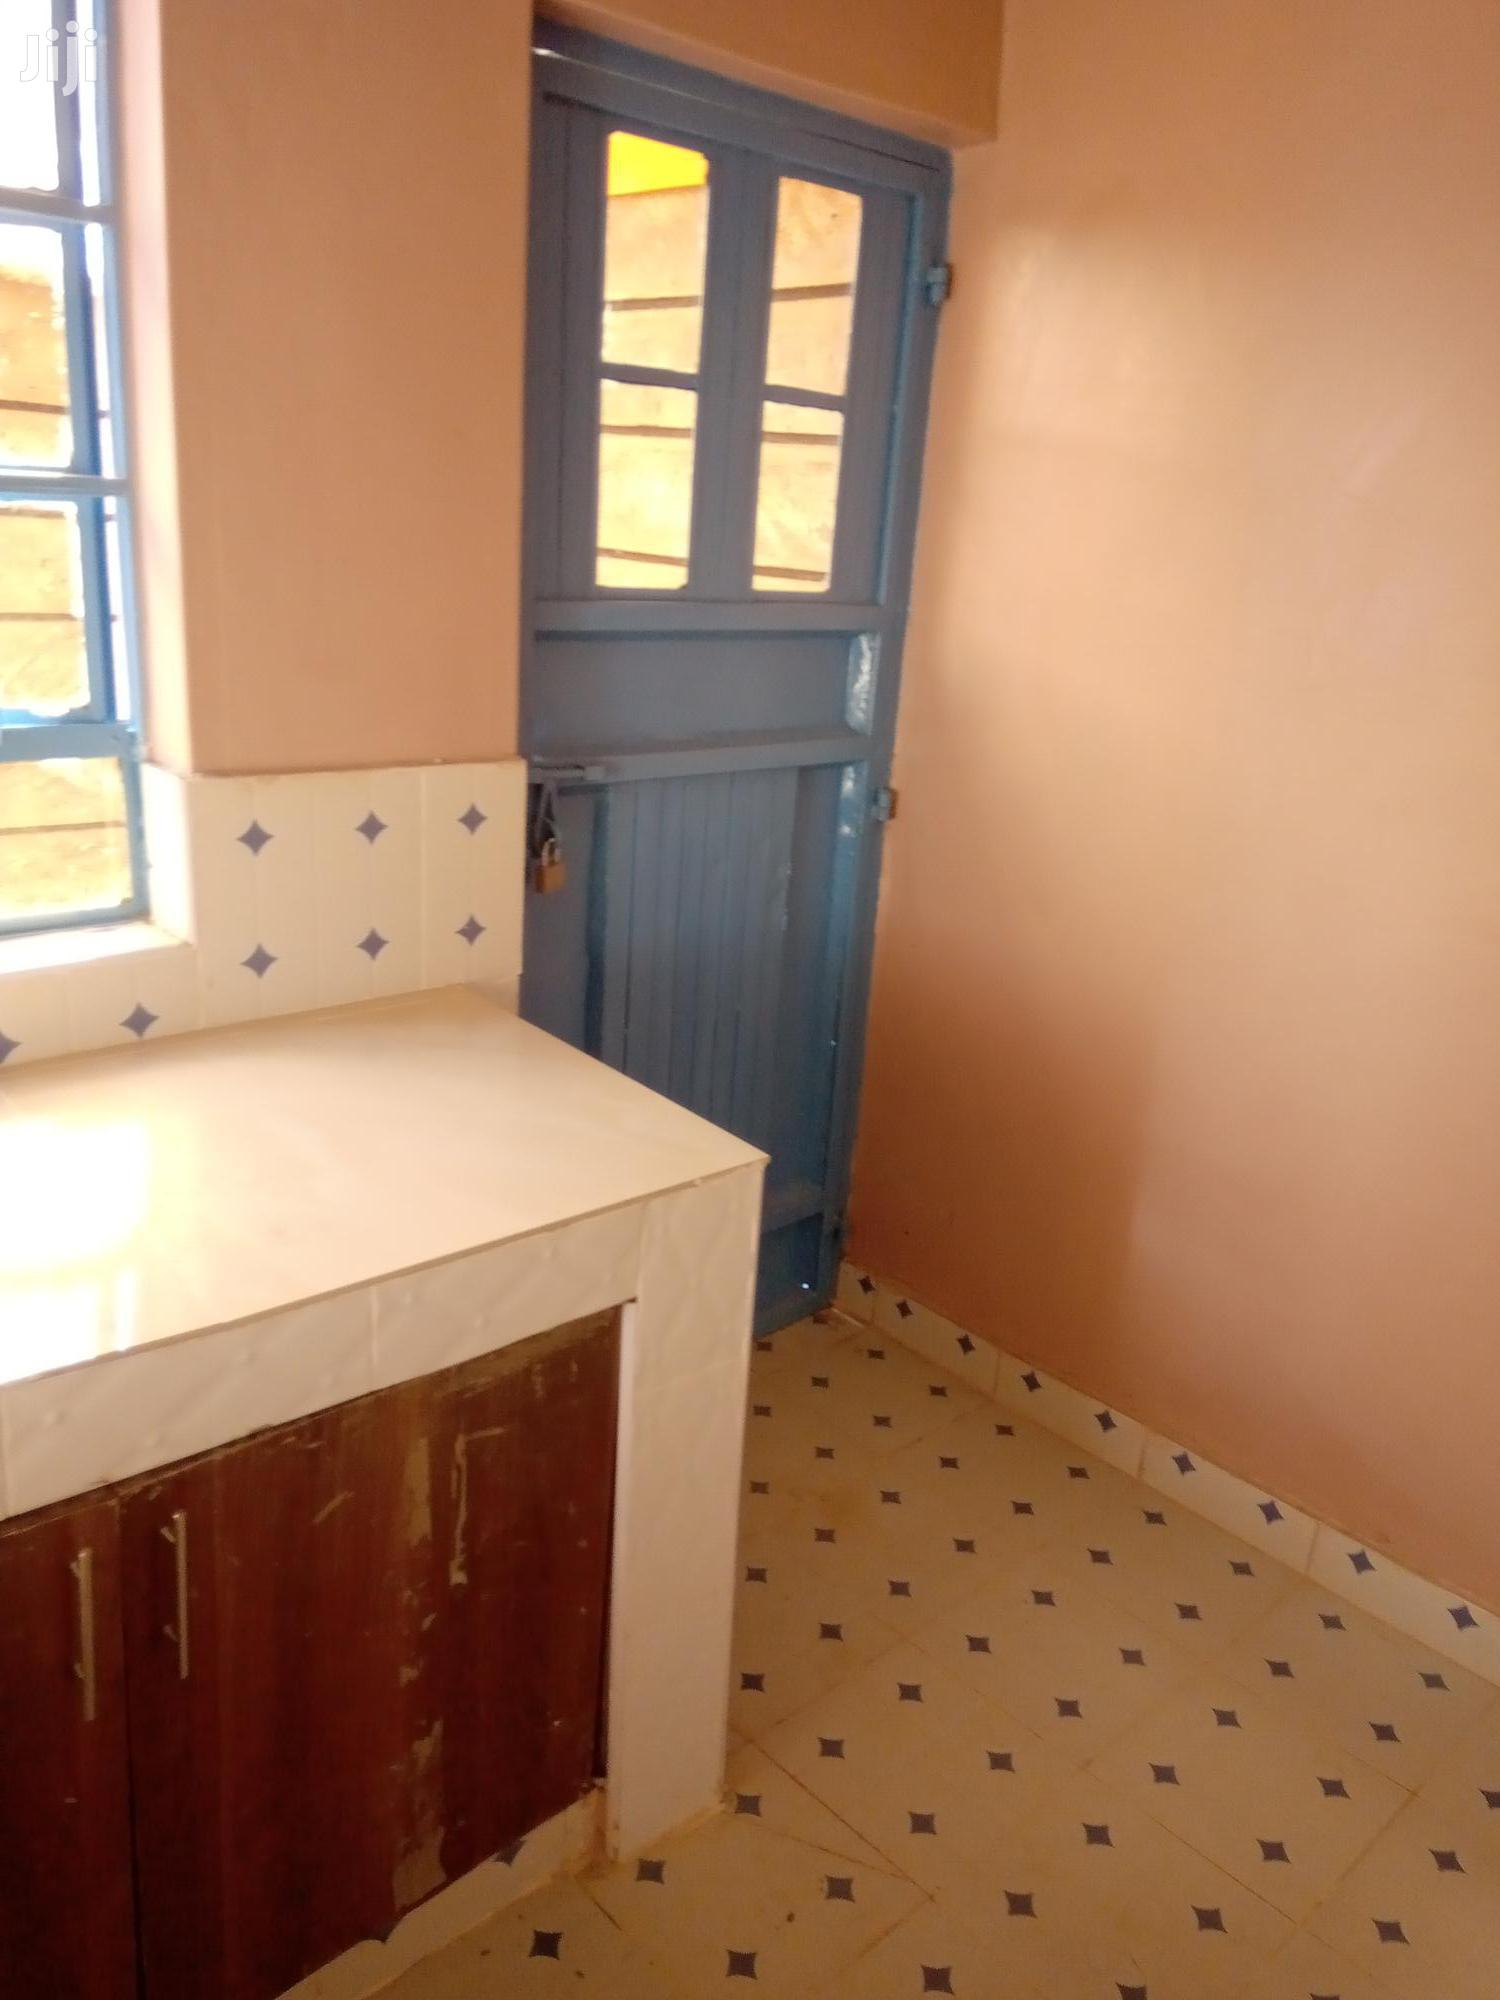 House To Let   Houses & Apartments For Rent for sale in Embakasi, Nairobi, Kenya